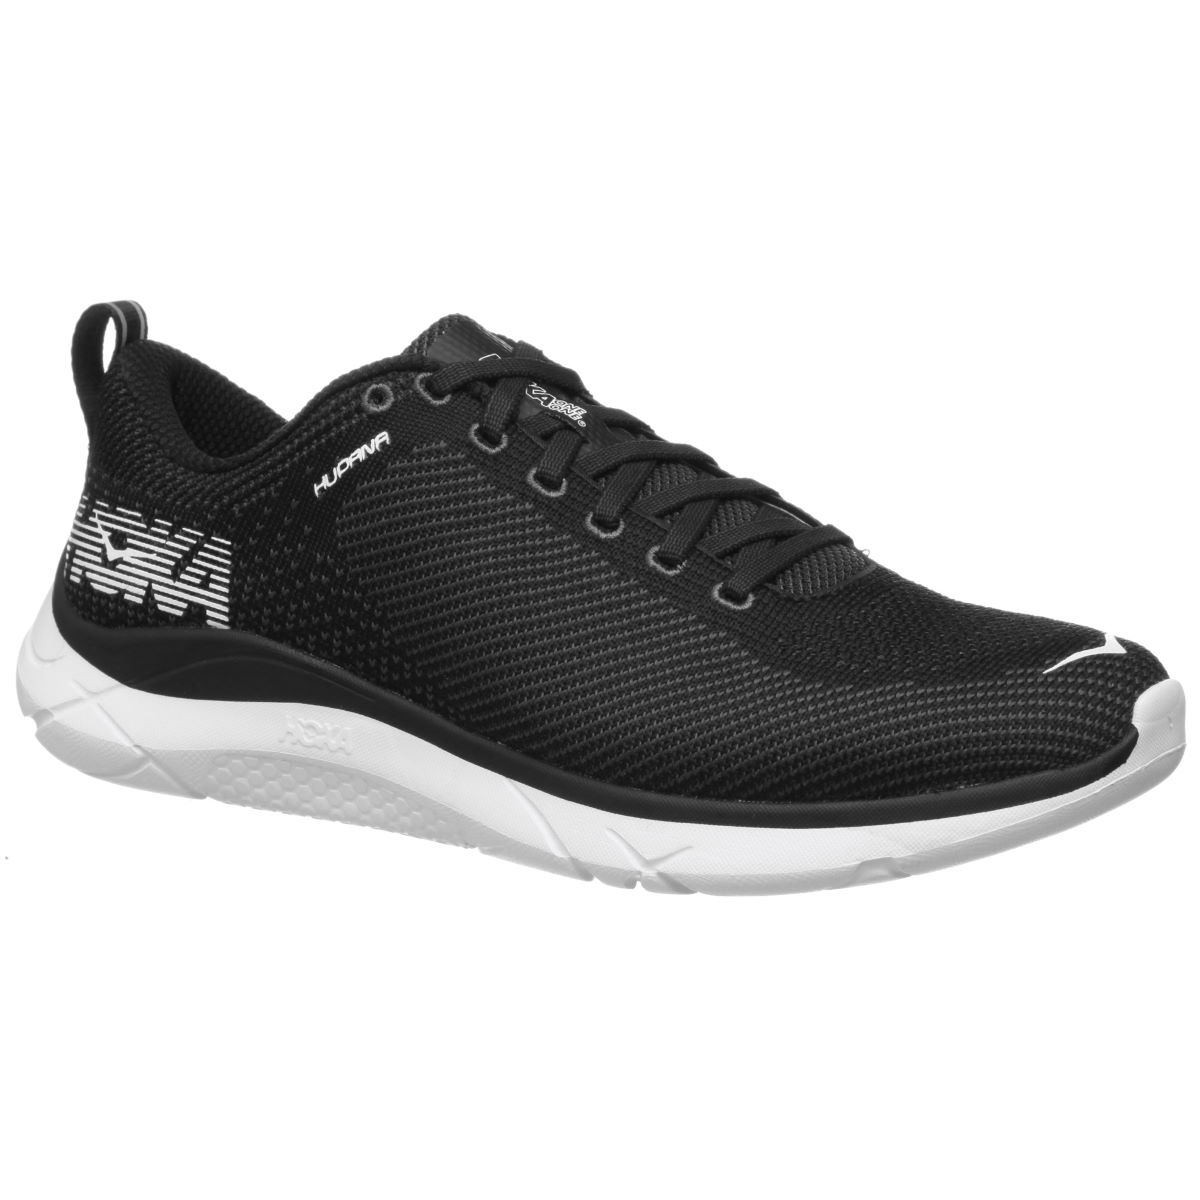 Chaussures Femme Hoka One One Hupana - UK 4.5 Black/Dark Shadow